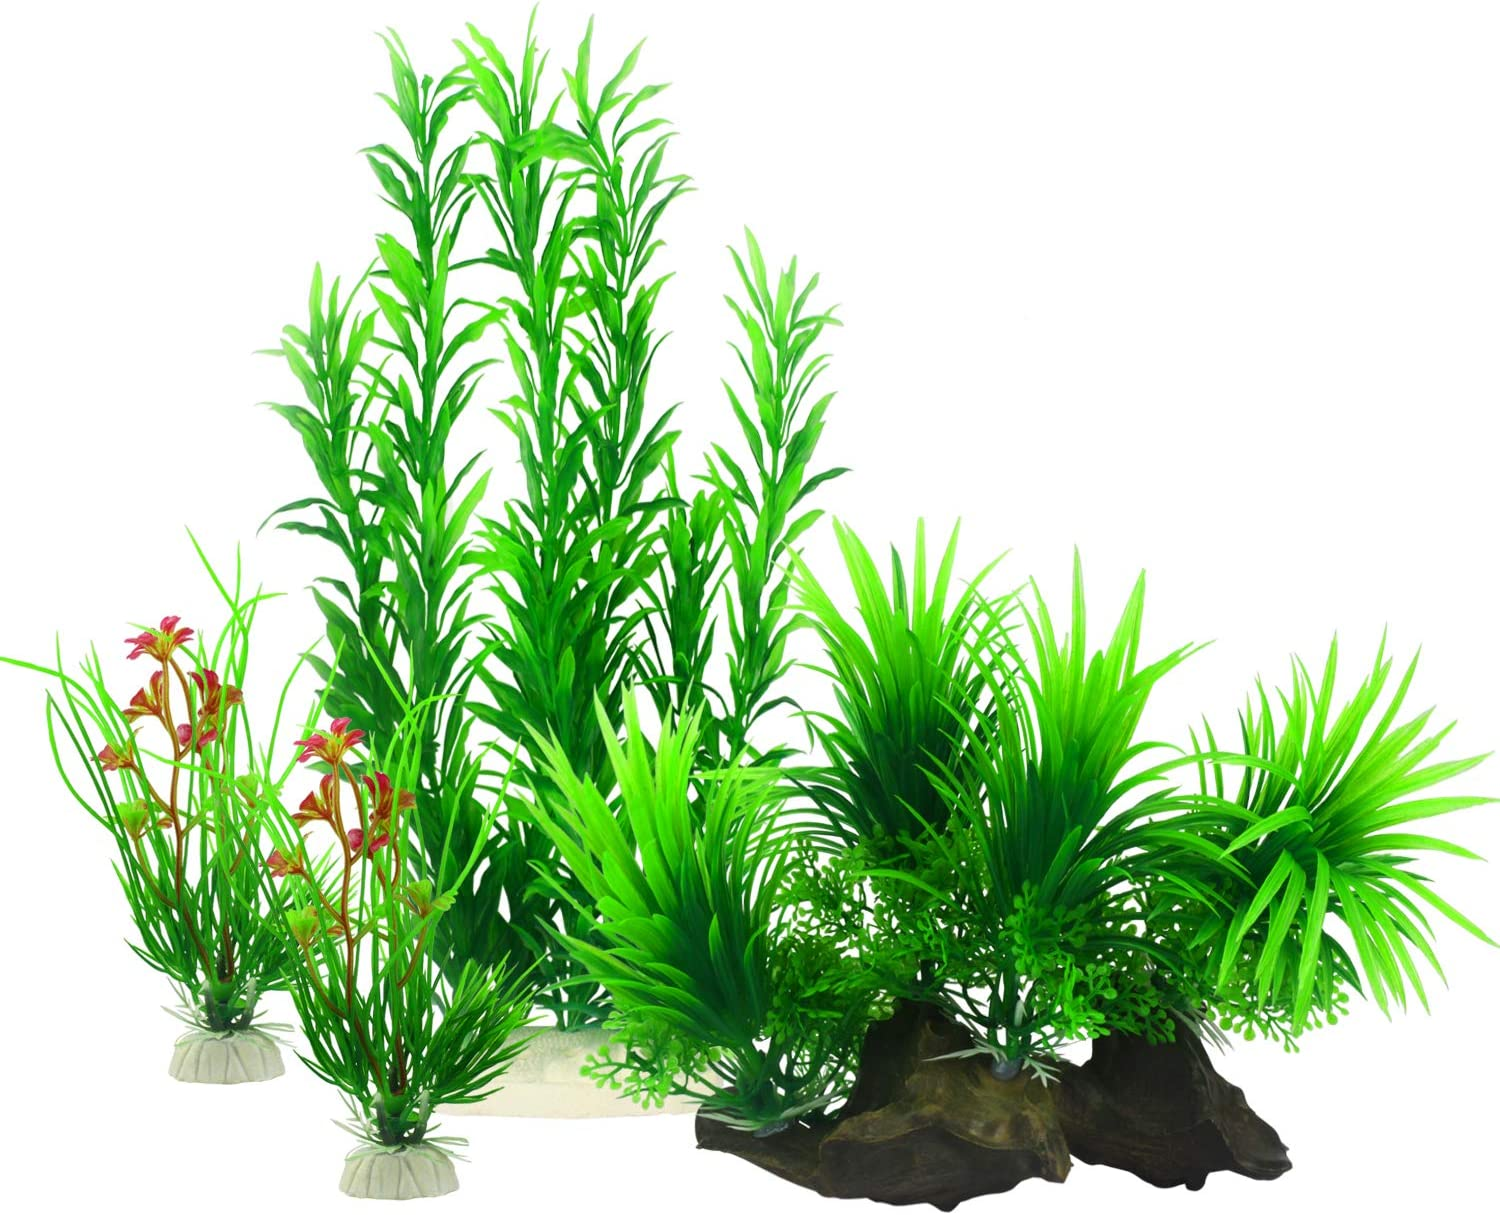 MyLifeUNIT Fish Tank Plants, Artificial Aquatic Plants for Aquarium Decorations (Pack of 4)